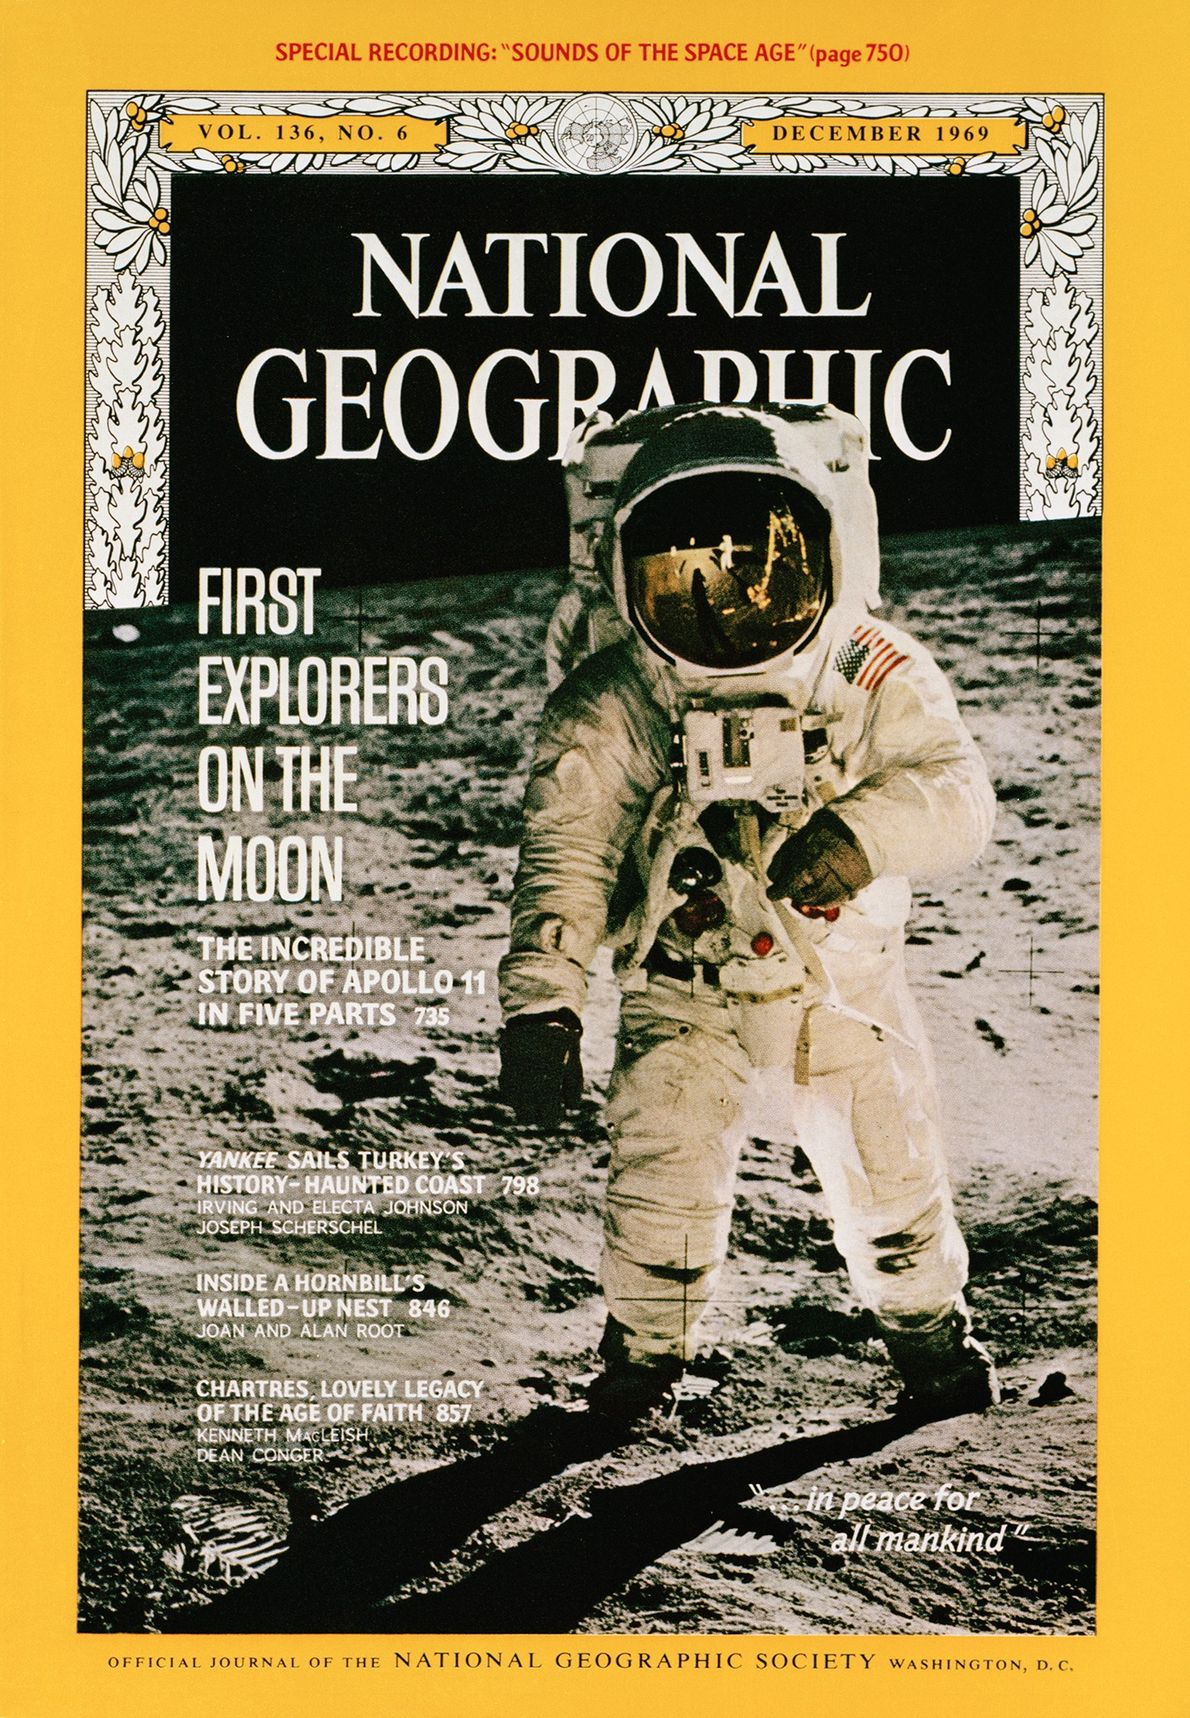 The cover of the December 1969 issue of National Geographic magazine featured a now iconic picture ...